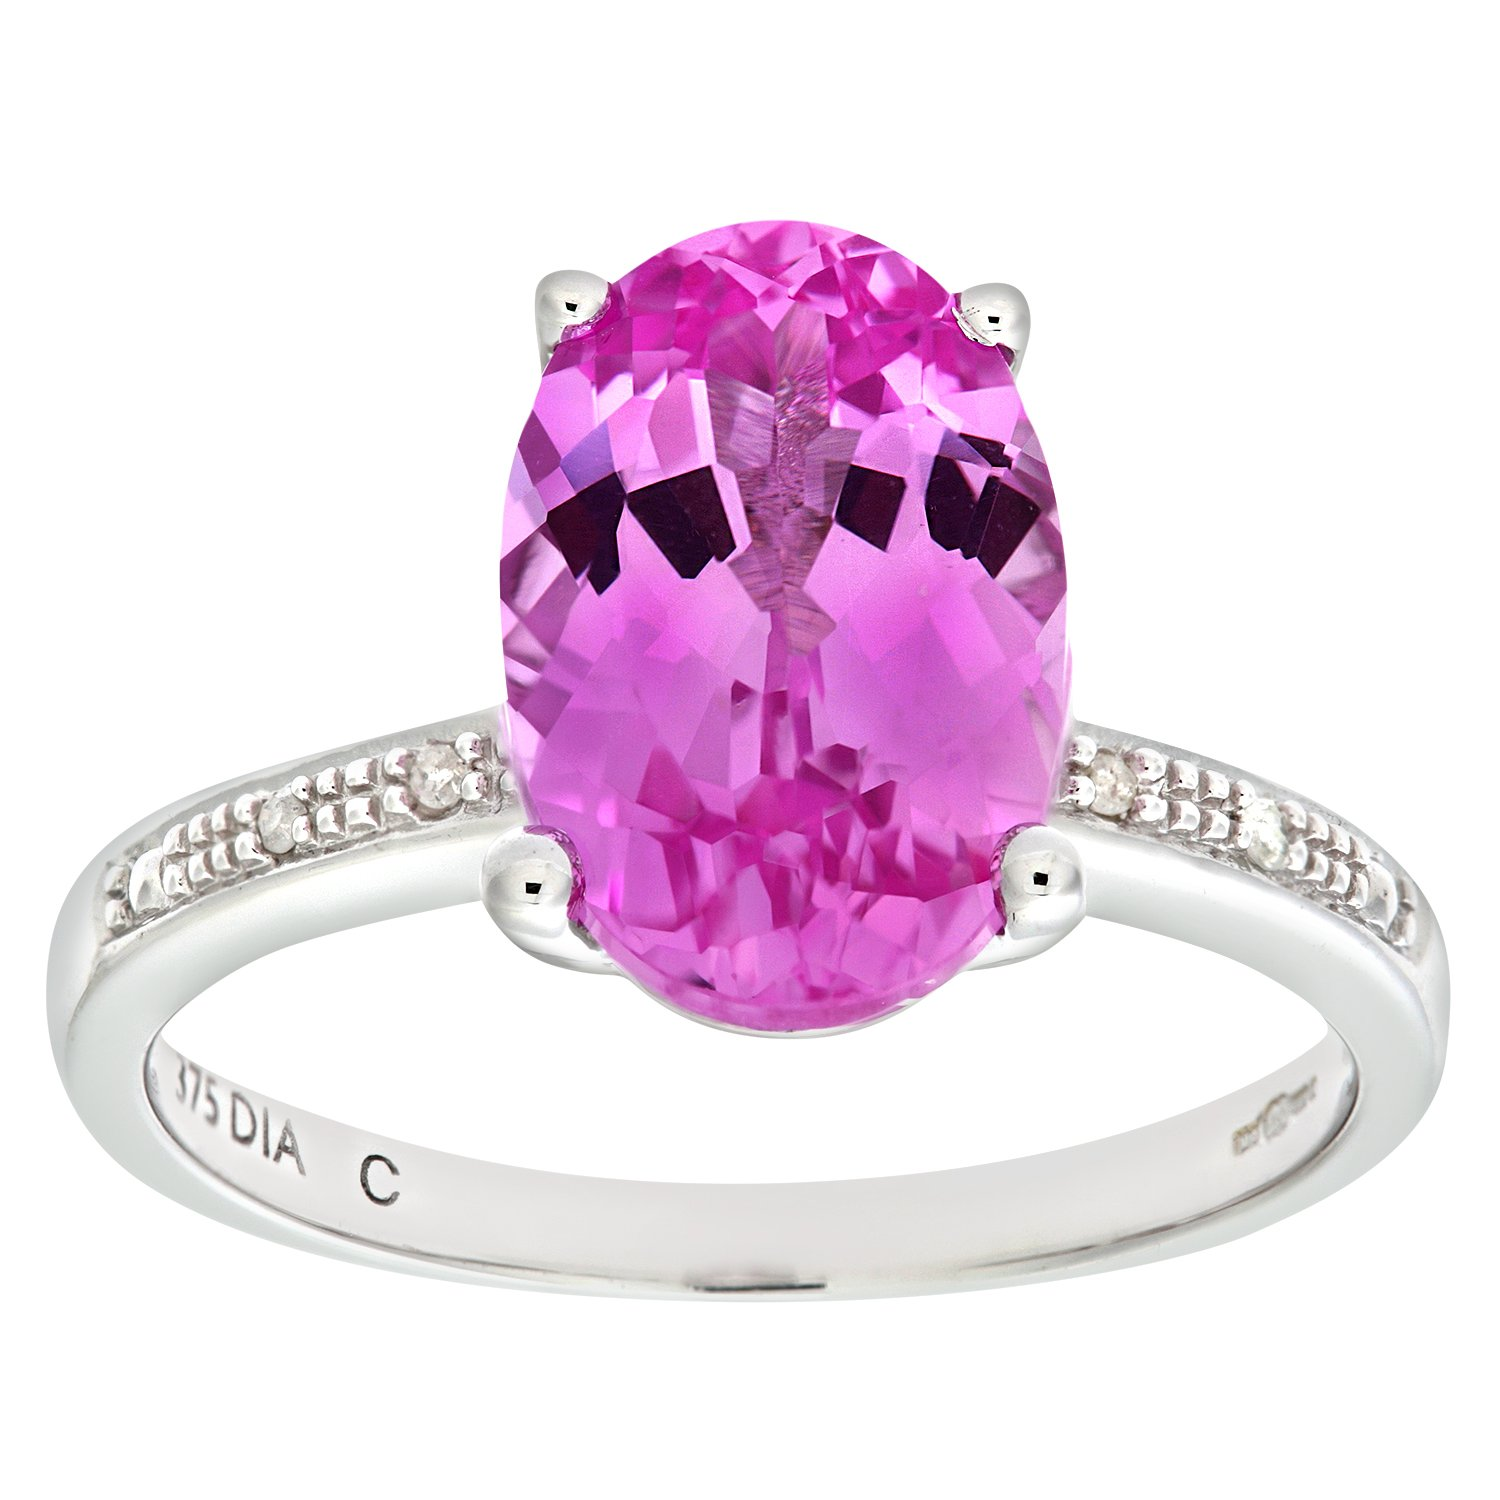 h si diamond rings and gemstone ring gold product pink image sapphire engagement white with arya